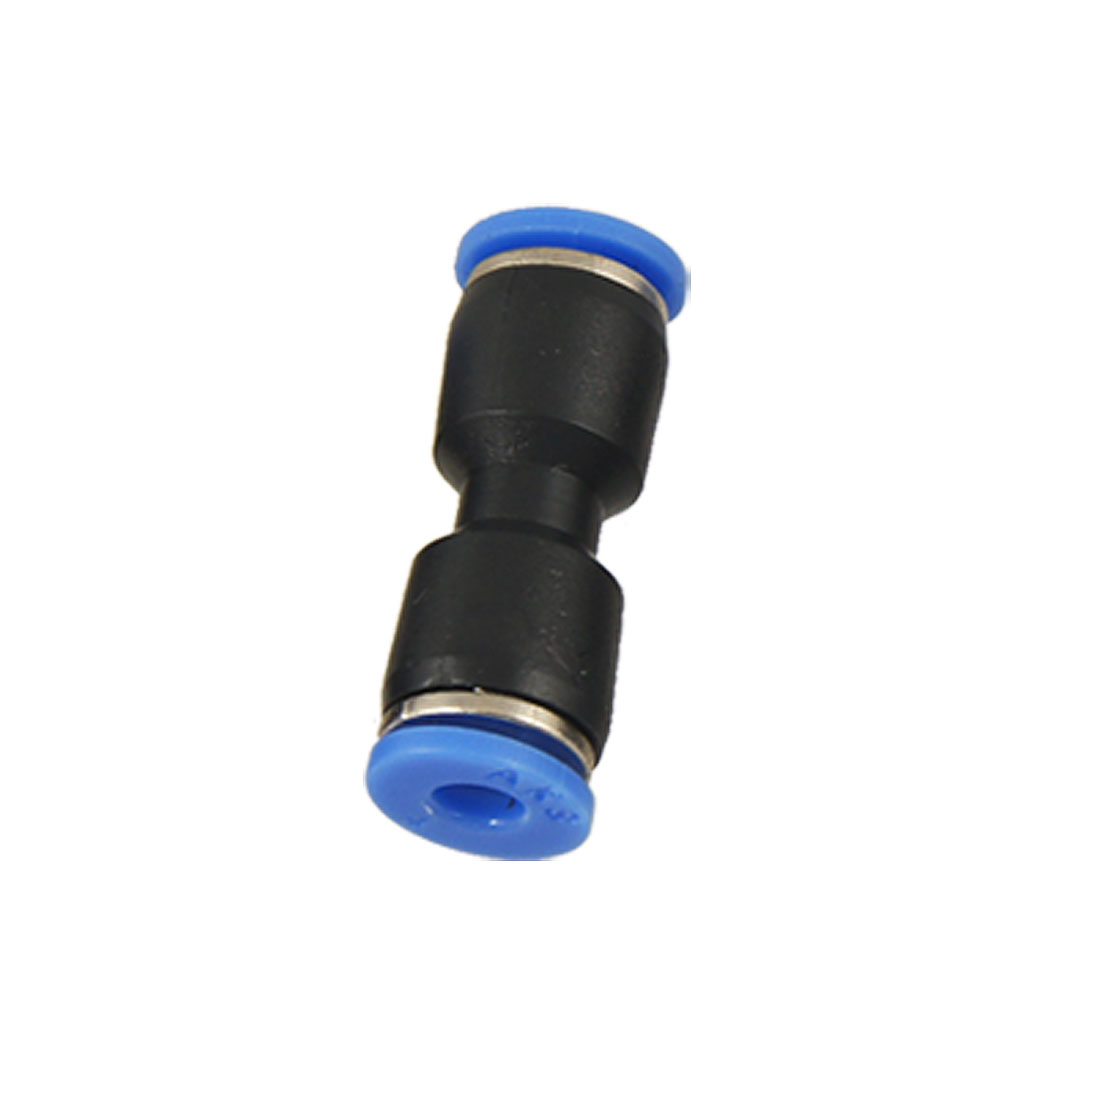 5 Pcs 4mm to 4mm One Touch Connector Straight Push In Quick Fittings